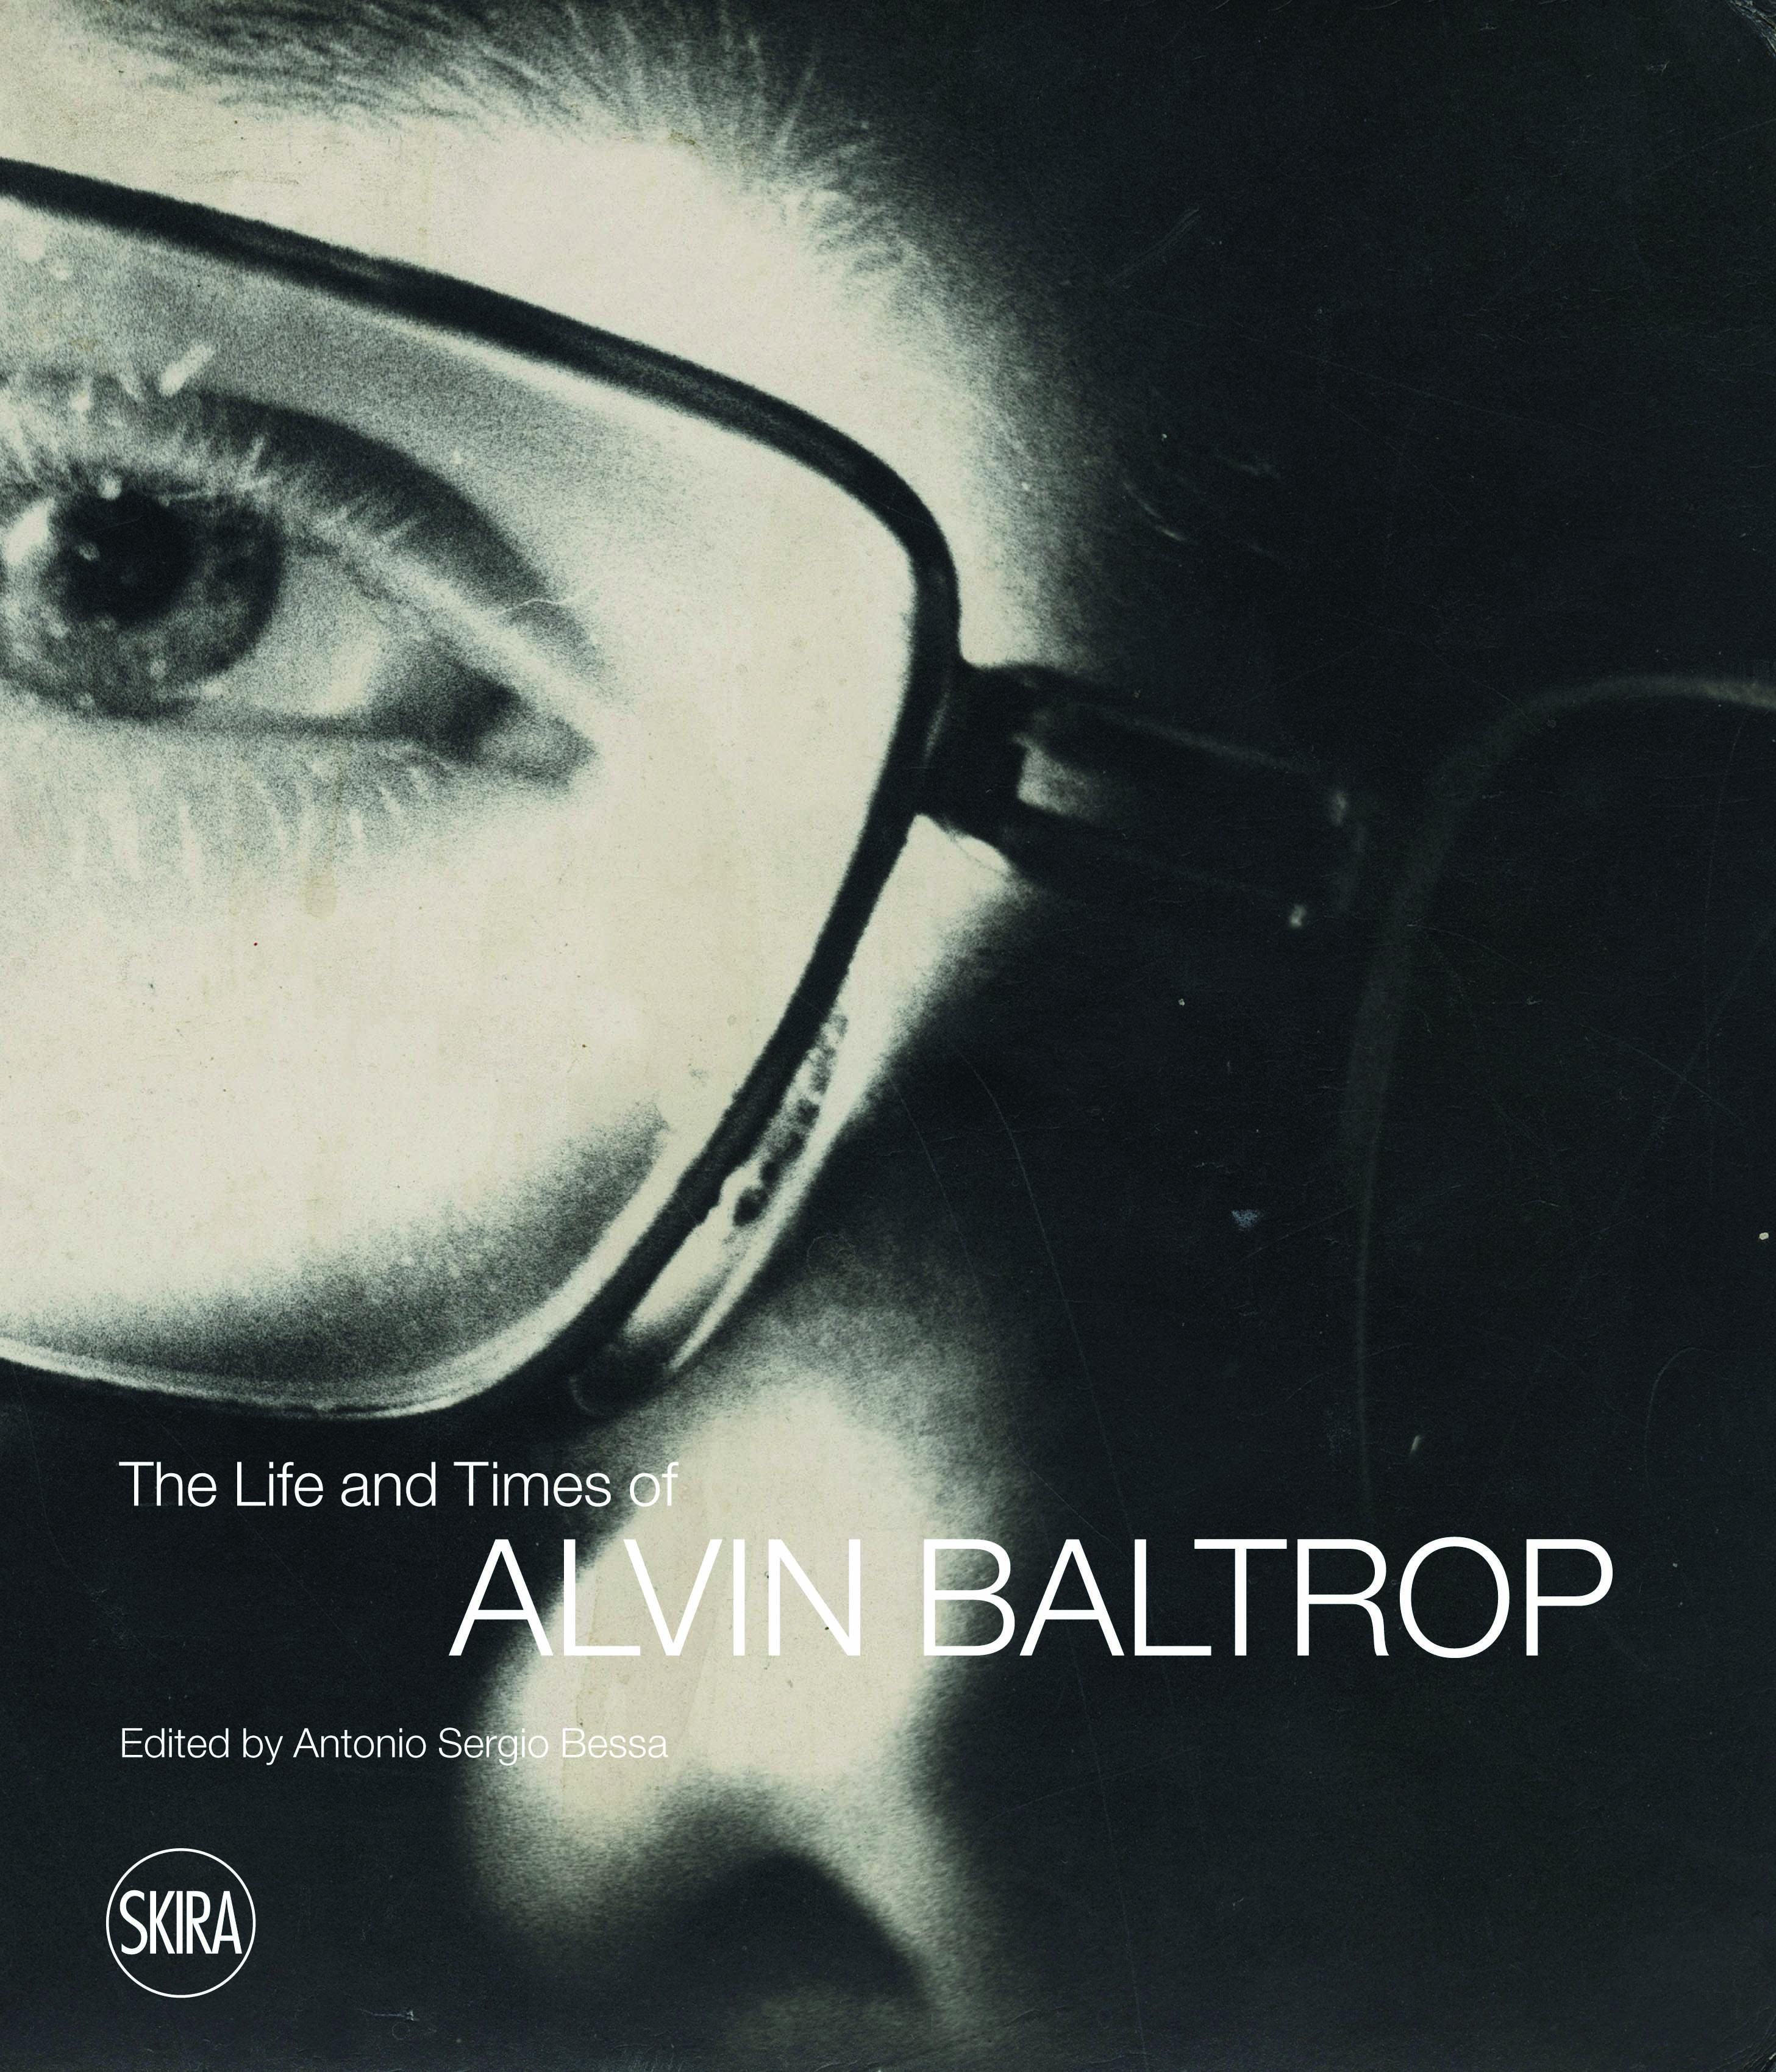 "Alvin Baltrop – ""The Life and Times of Alvin Baltrop"" 2019, 254 pages, hardcover, 28,5 x 24,5 cm Euro 65,- – This comprehensive catalogue is published on the occasion of Alvin Baltrop's retrospective at the Bronx Museum of the Arts in New York ""The Life and Times of Alvin Baltrop"", featuring essays by Antonio Sergio Bessa, Douglas Crimp, Adrienne Edwards, Allen Frame, and Mia Kang. The catalogue is published by Skira."